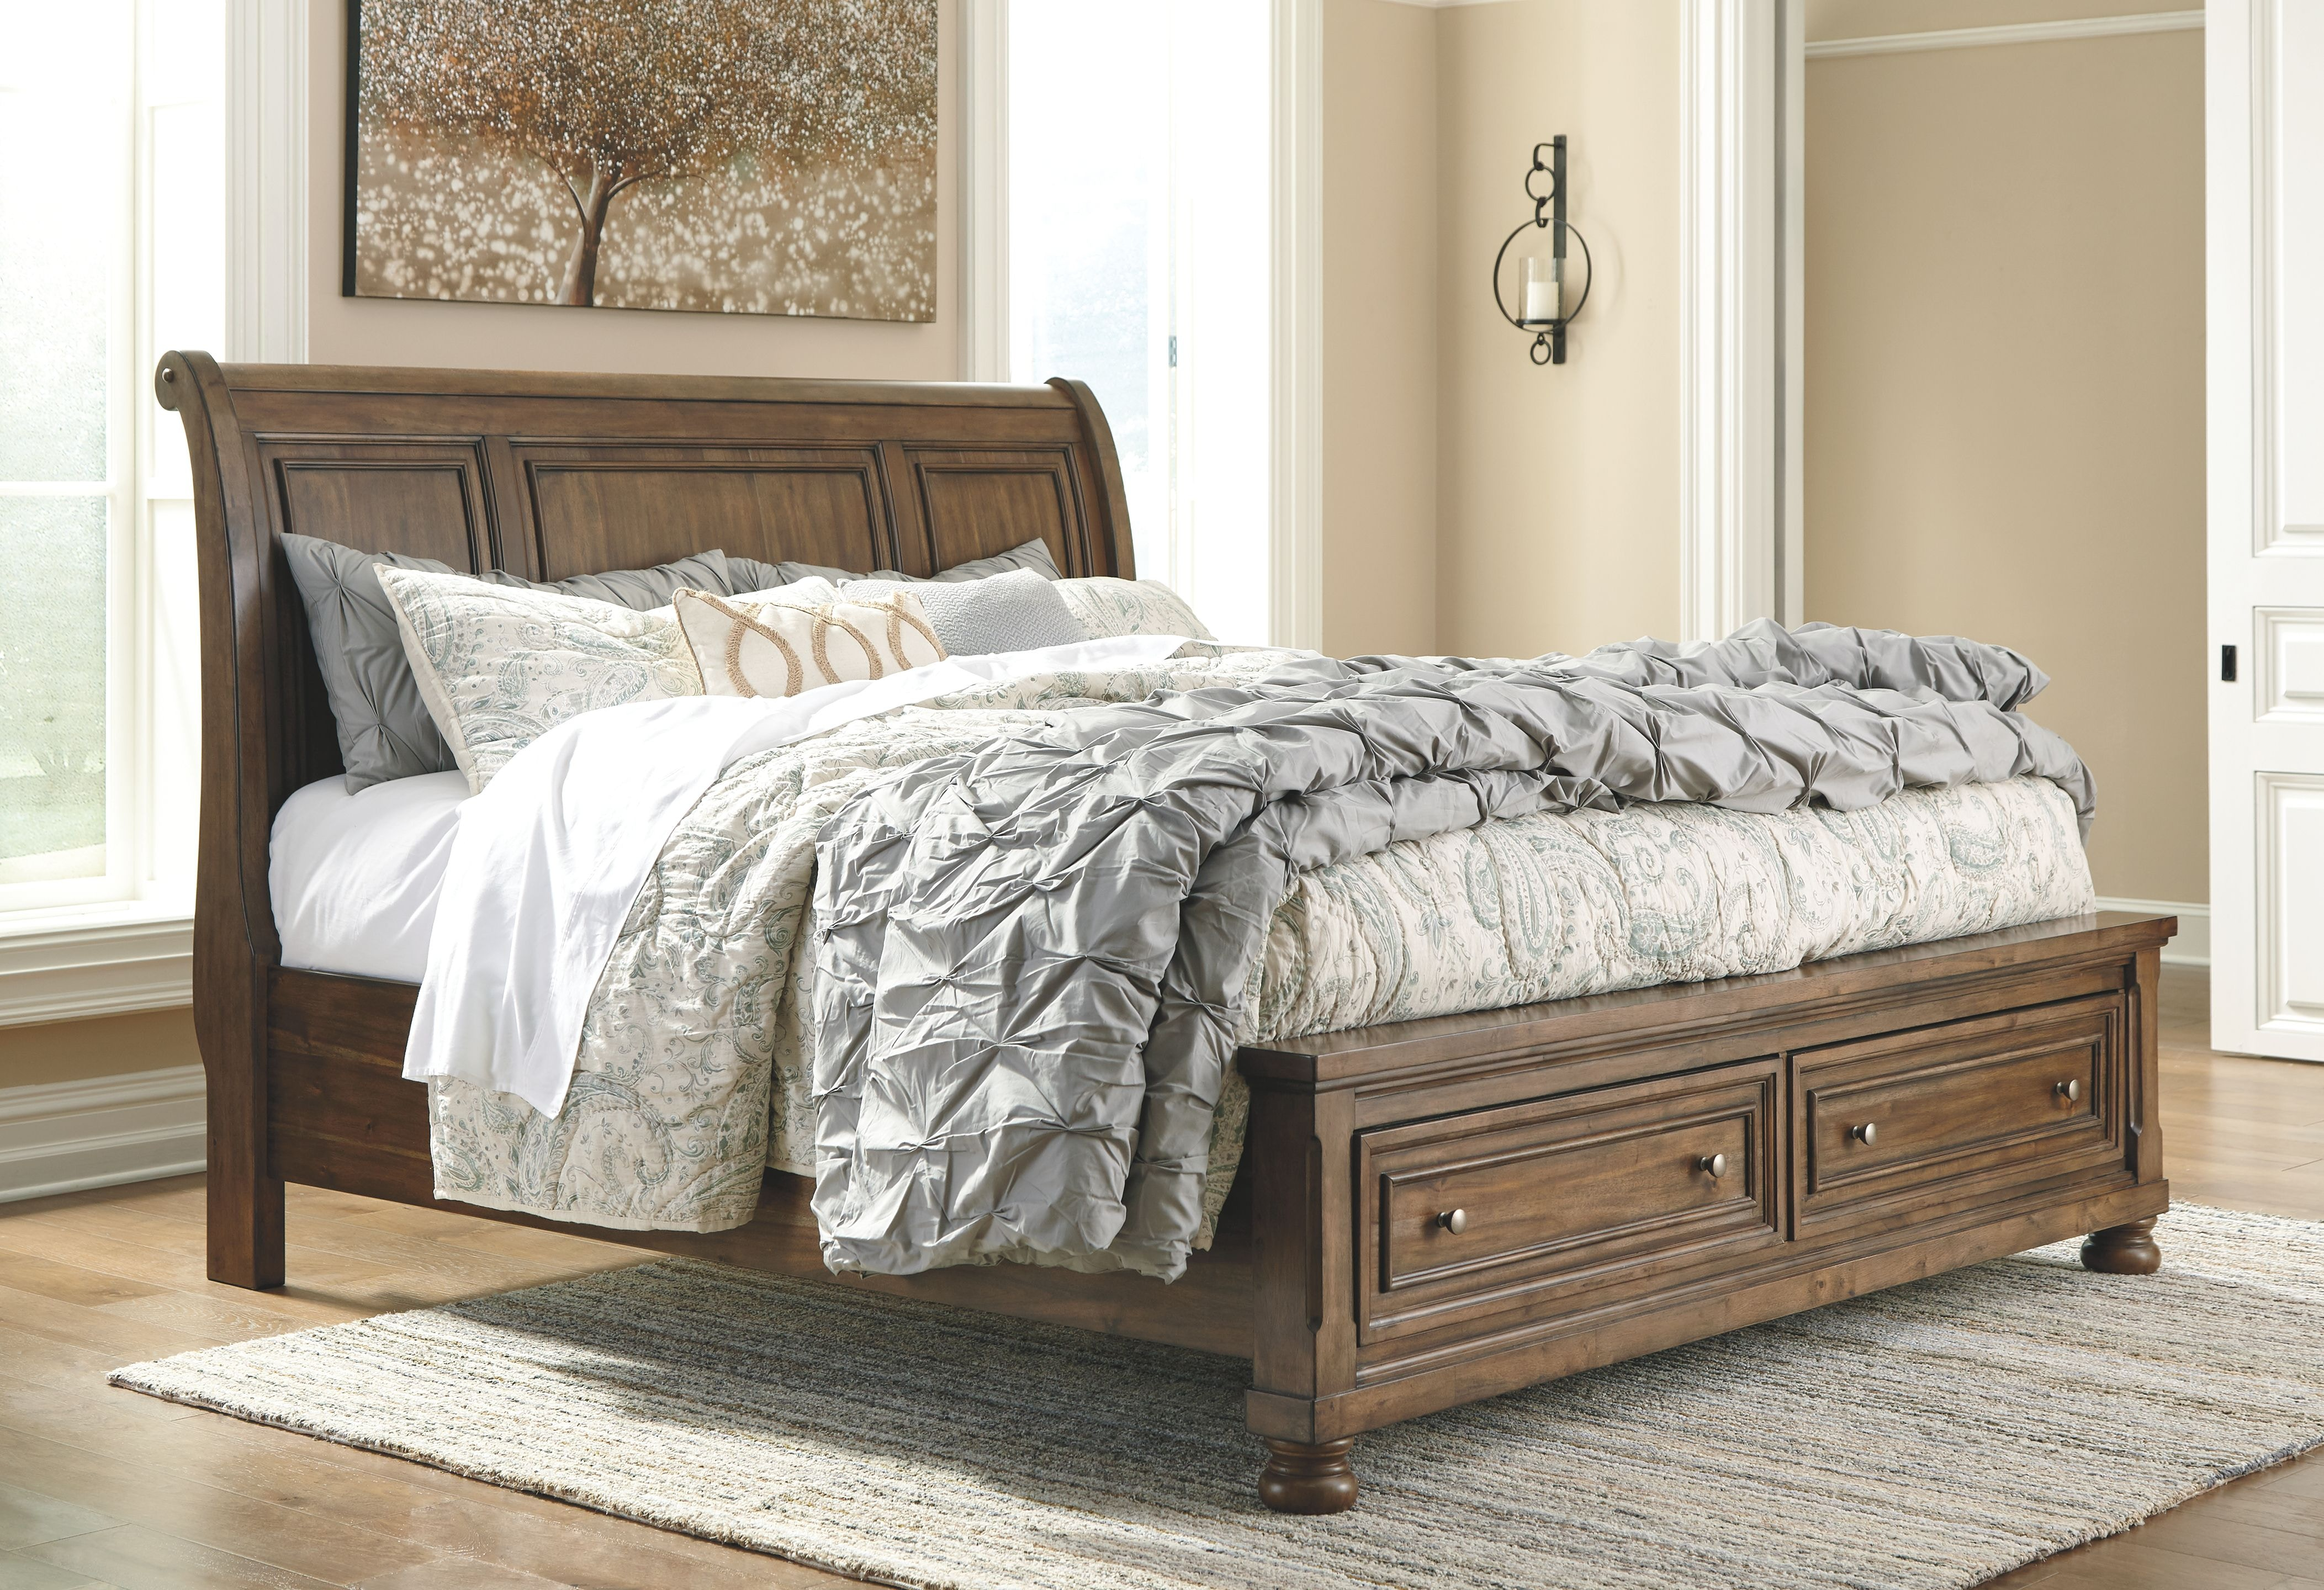 Bedding Storage Flynnter Queen Storage Bed